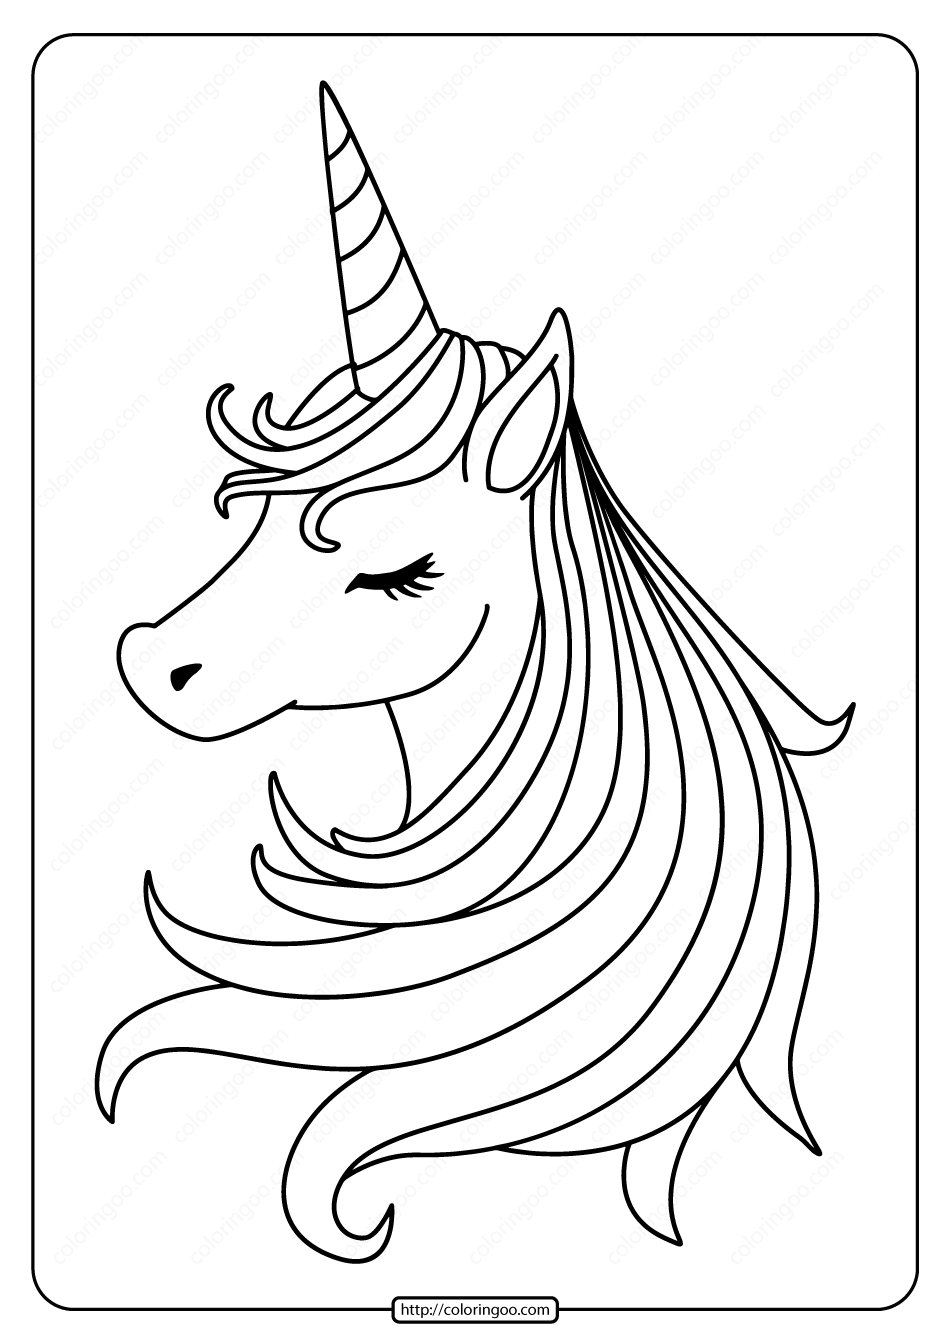 coloring sheet unicorn coloring pictures to print coloring pages printable for children activity shelter coloring pictures coloring to sheet unicorn print